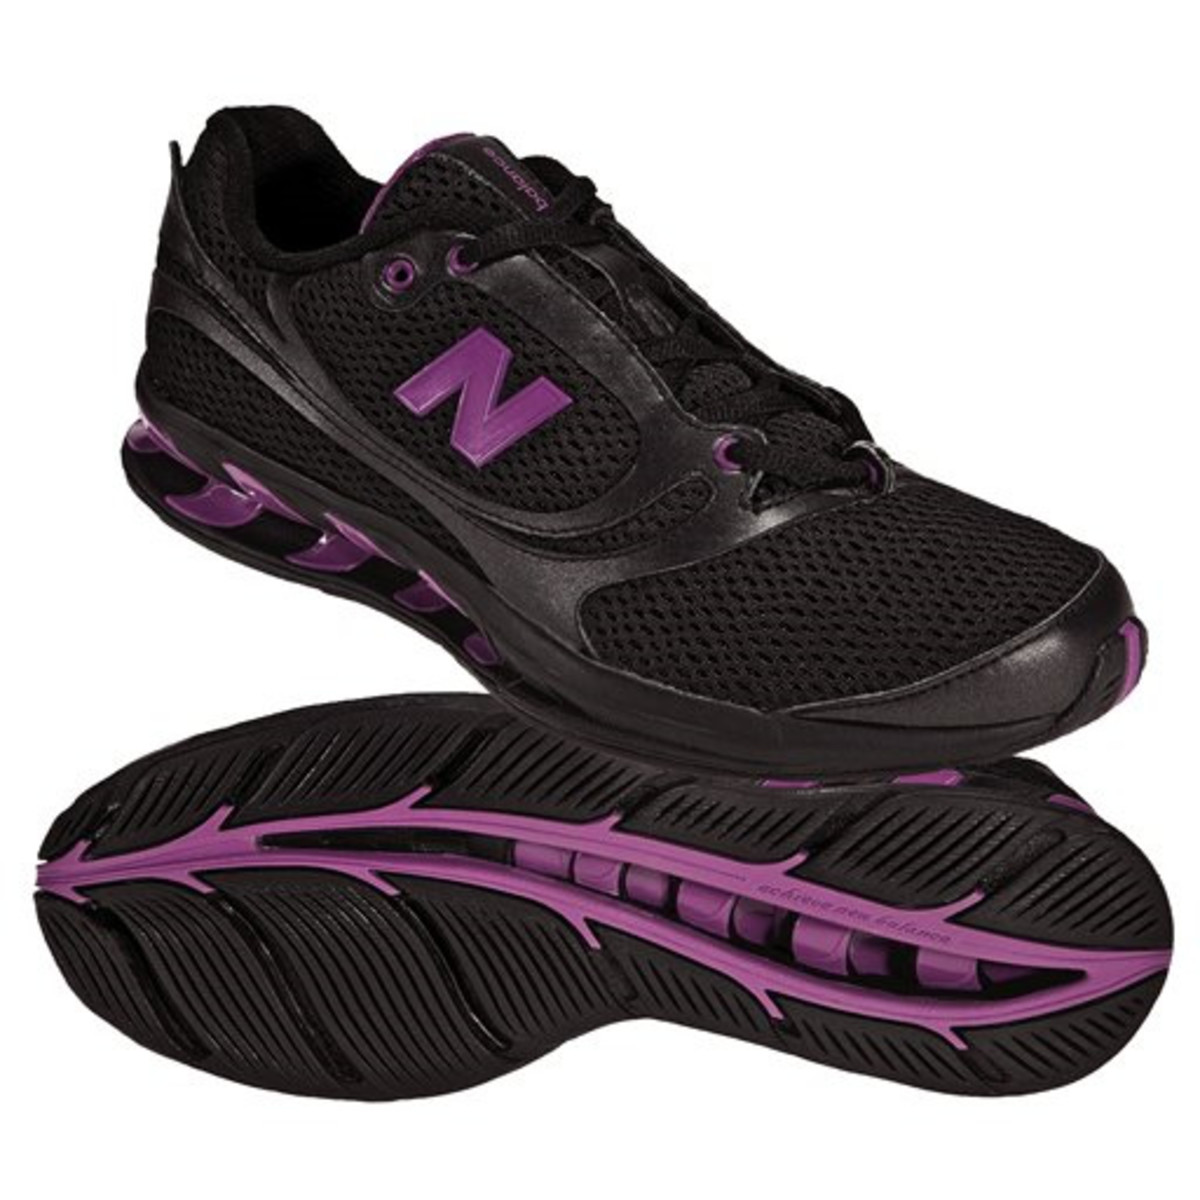 New Balance Walking Toning Shoe